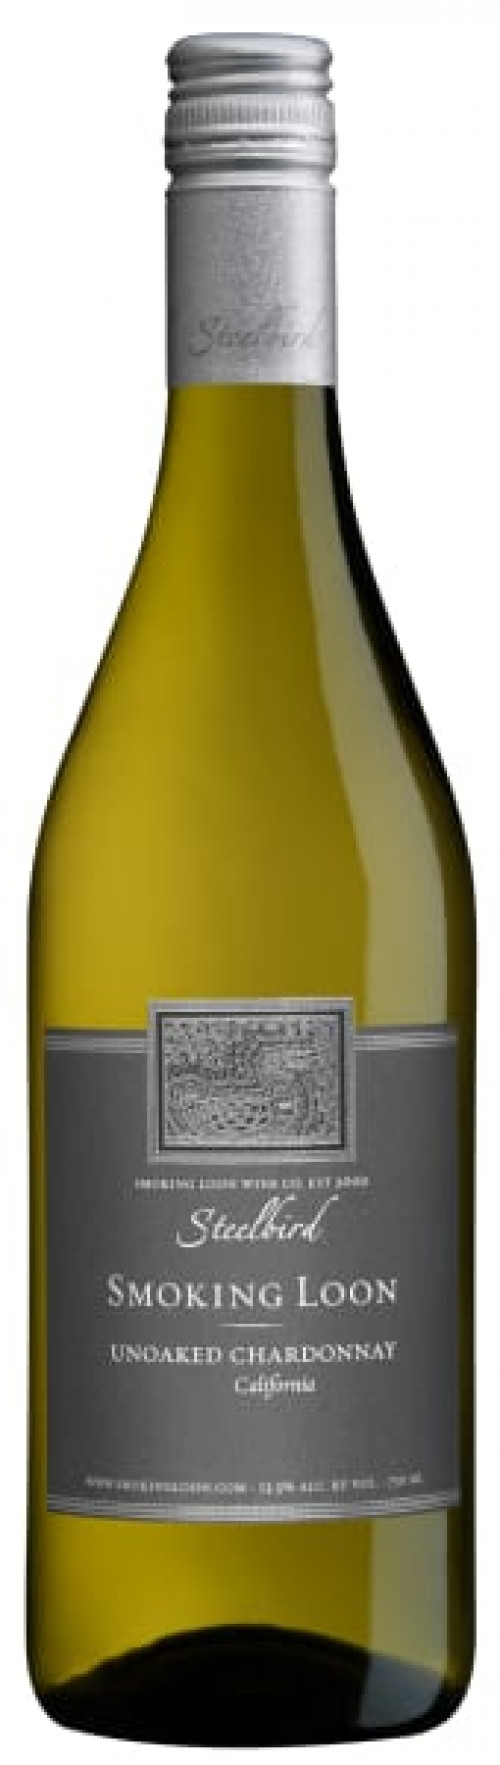 2019 Smoking Loon Steelbird Chardonnay 750ml